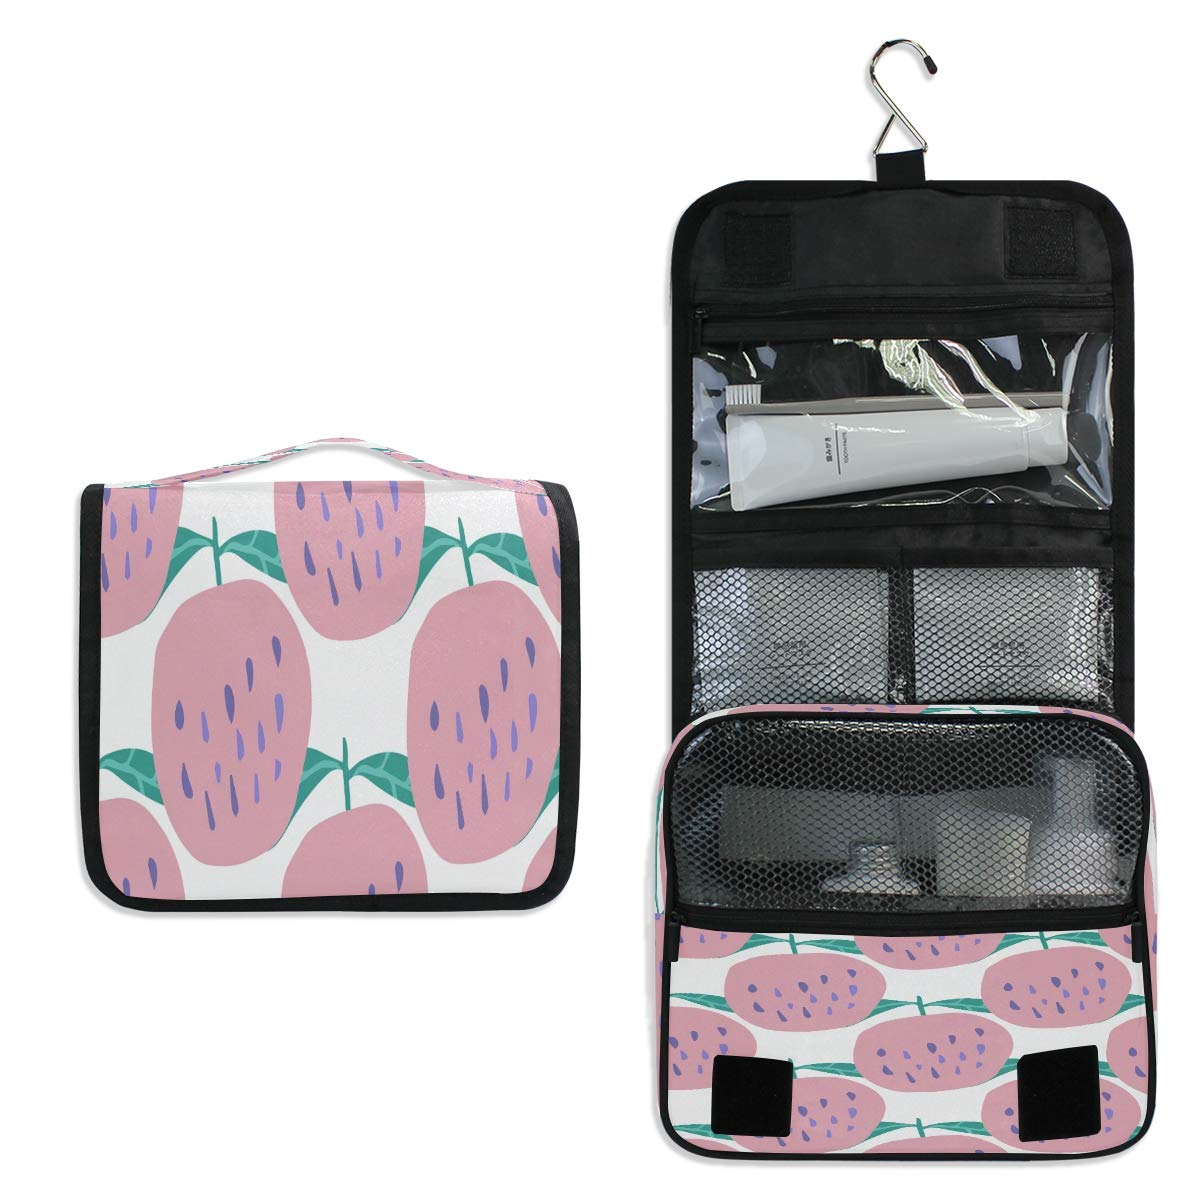 Hanging Toiletry Bag, Apples Waterproof Quilted Wash Gargle Bag Portable Travel Bathroom Shower Bags Deluxe Large Makeup Brush Case Capacity Pouch for Men and Woman